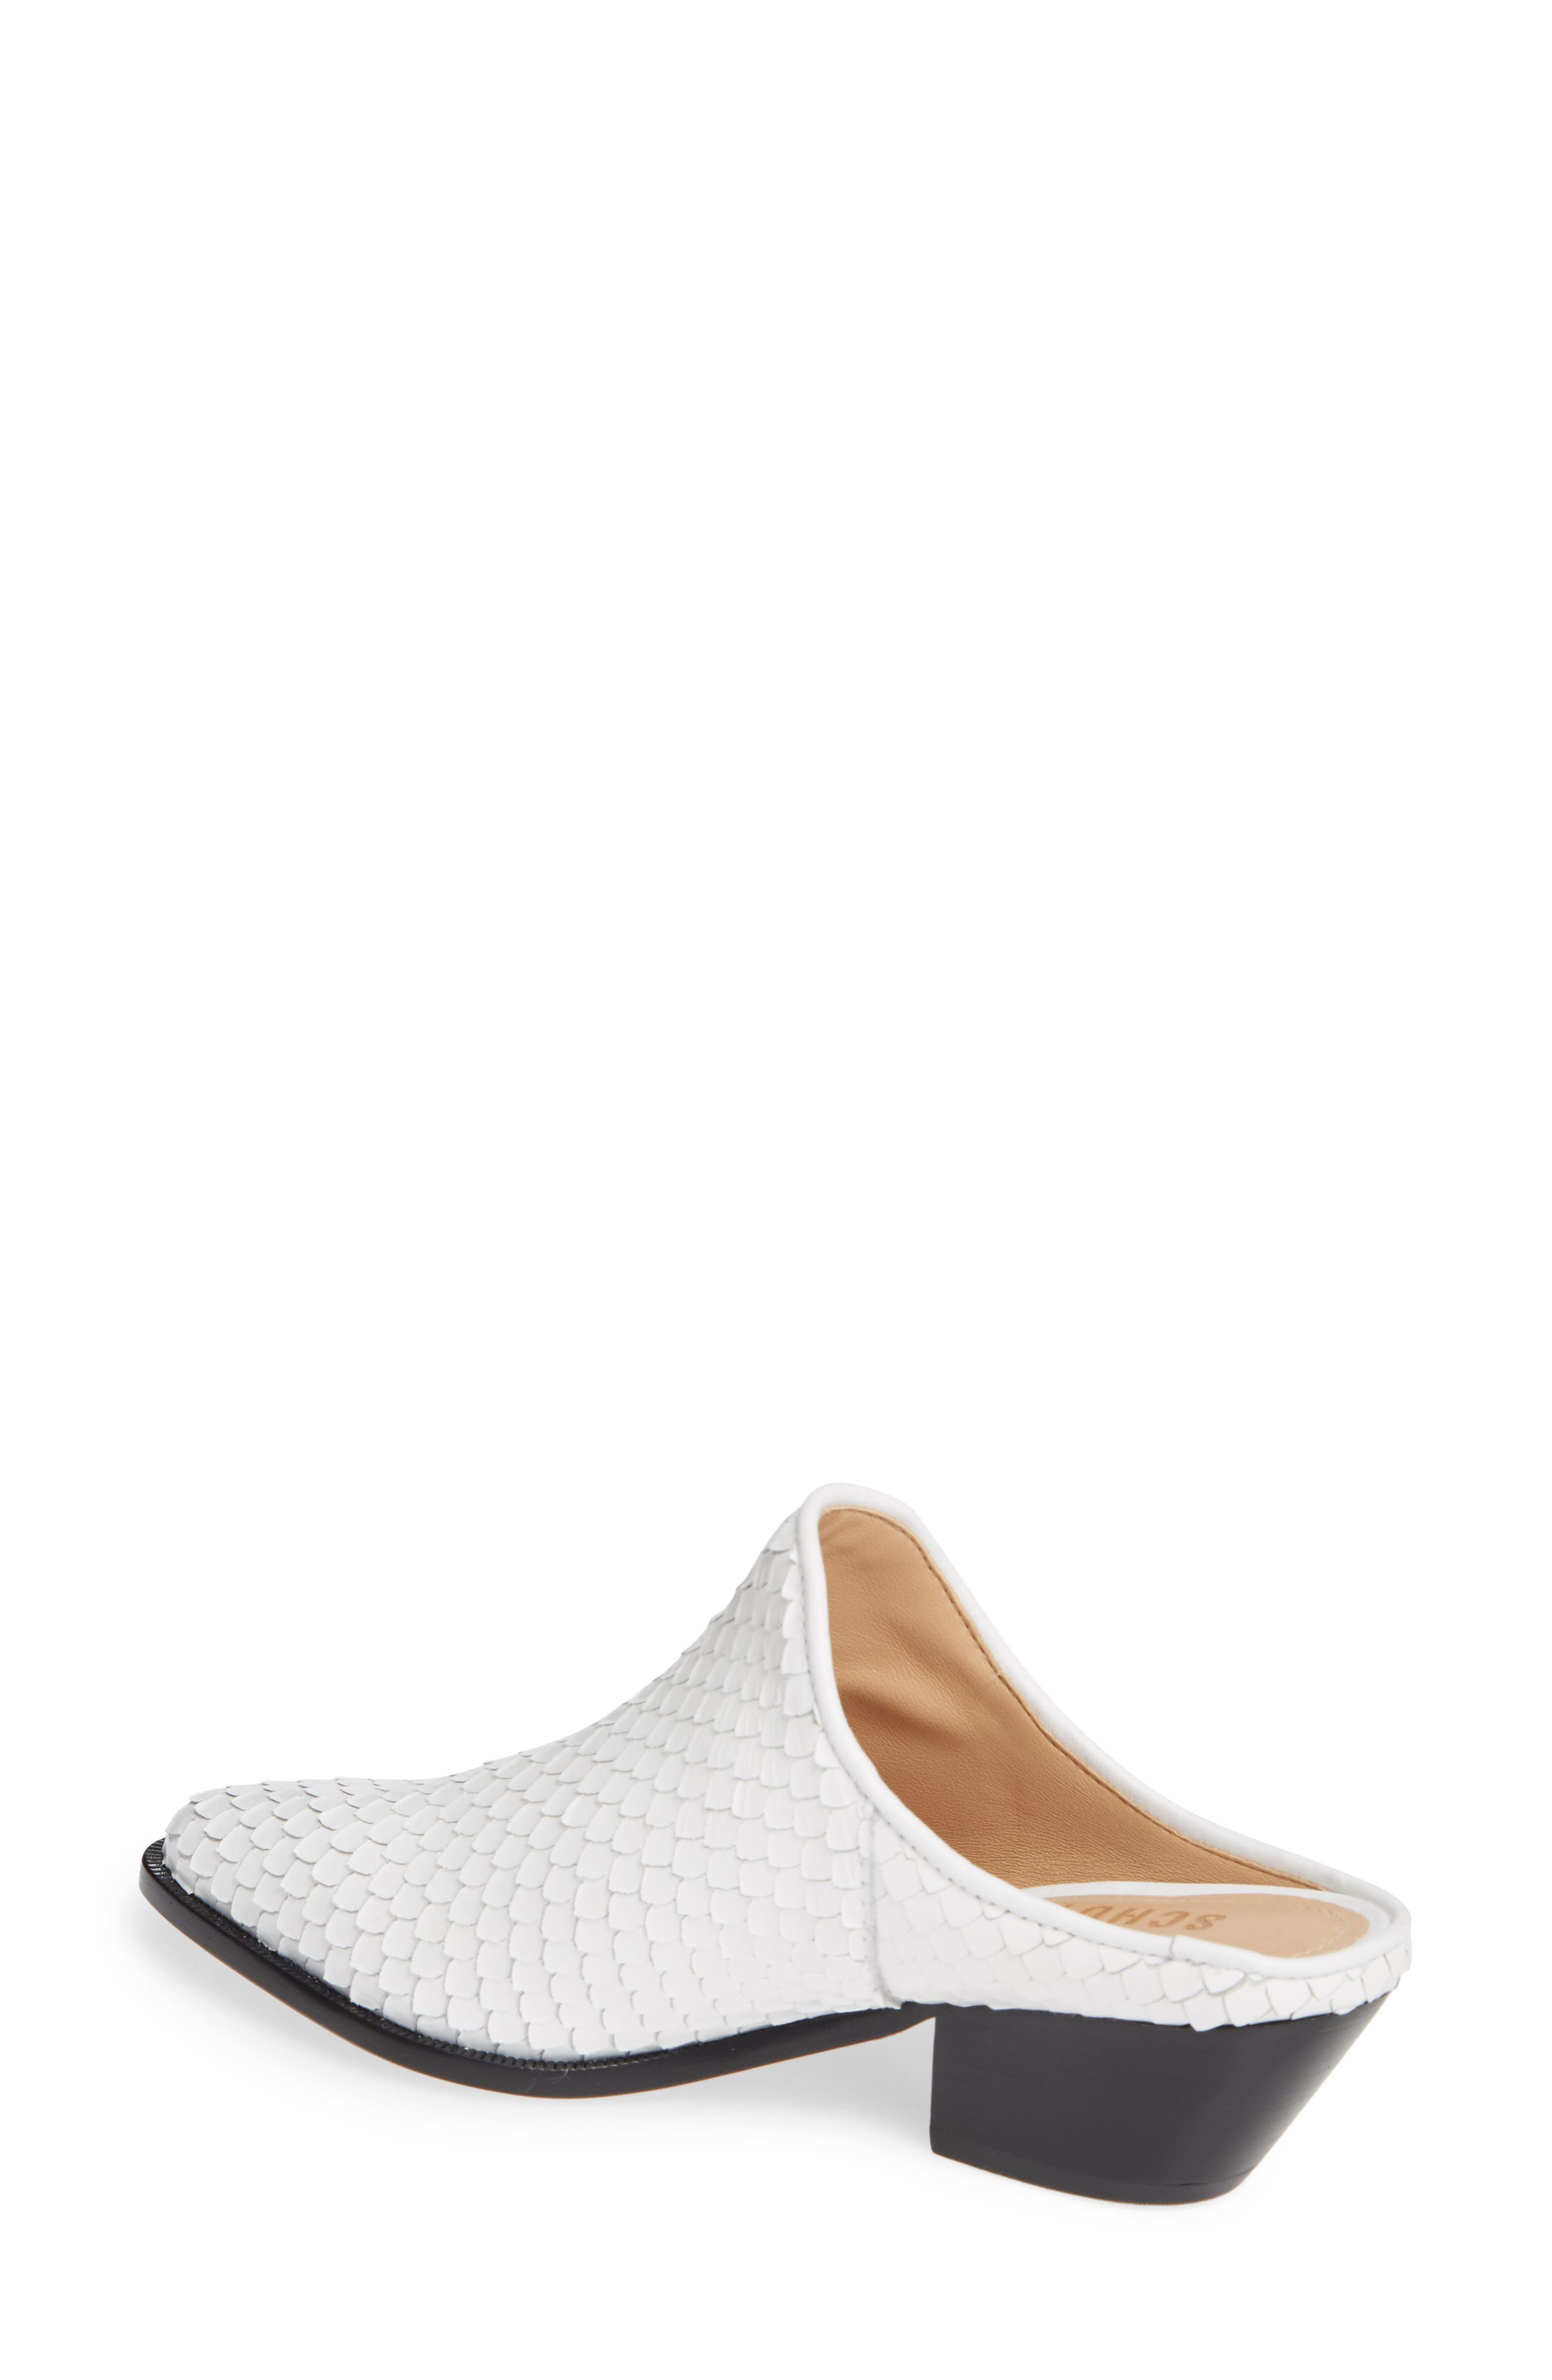 Leanny Mule,                             Alternate thumbnail 2, color,                             WHITE LEATHER